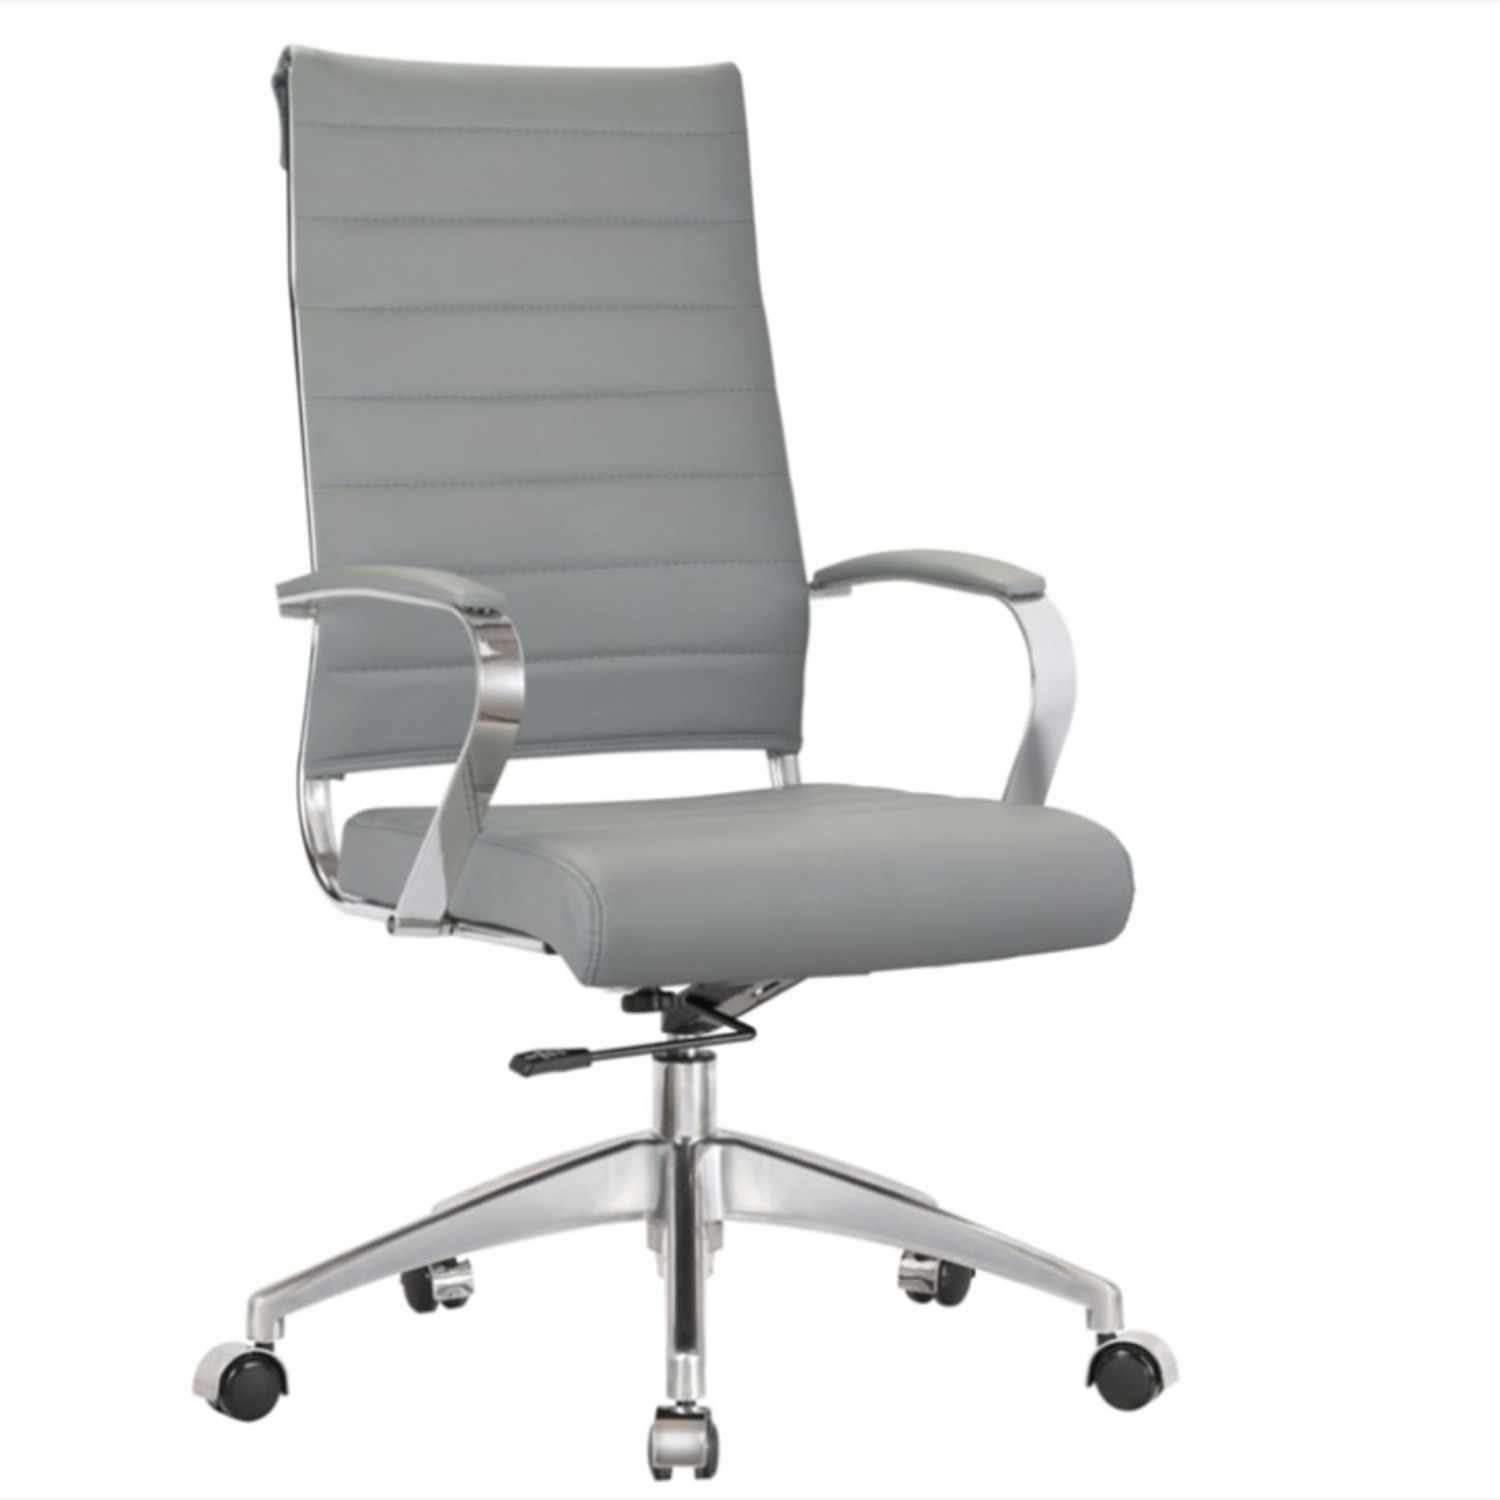 Office Chair W/ High Back Seat In Grey Leather - image-0